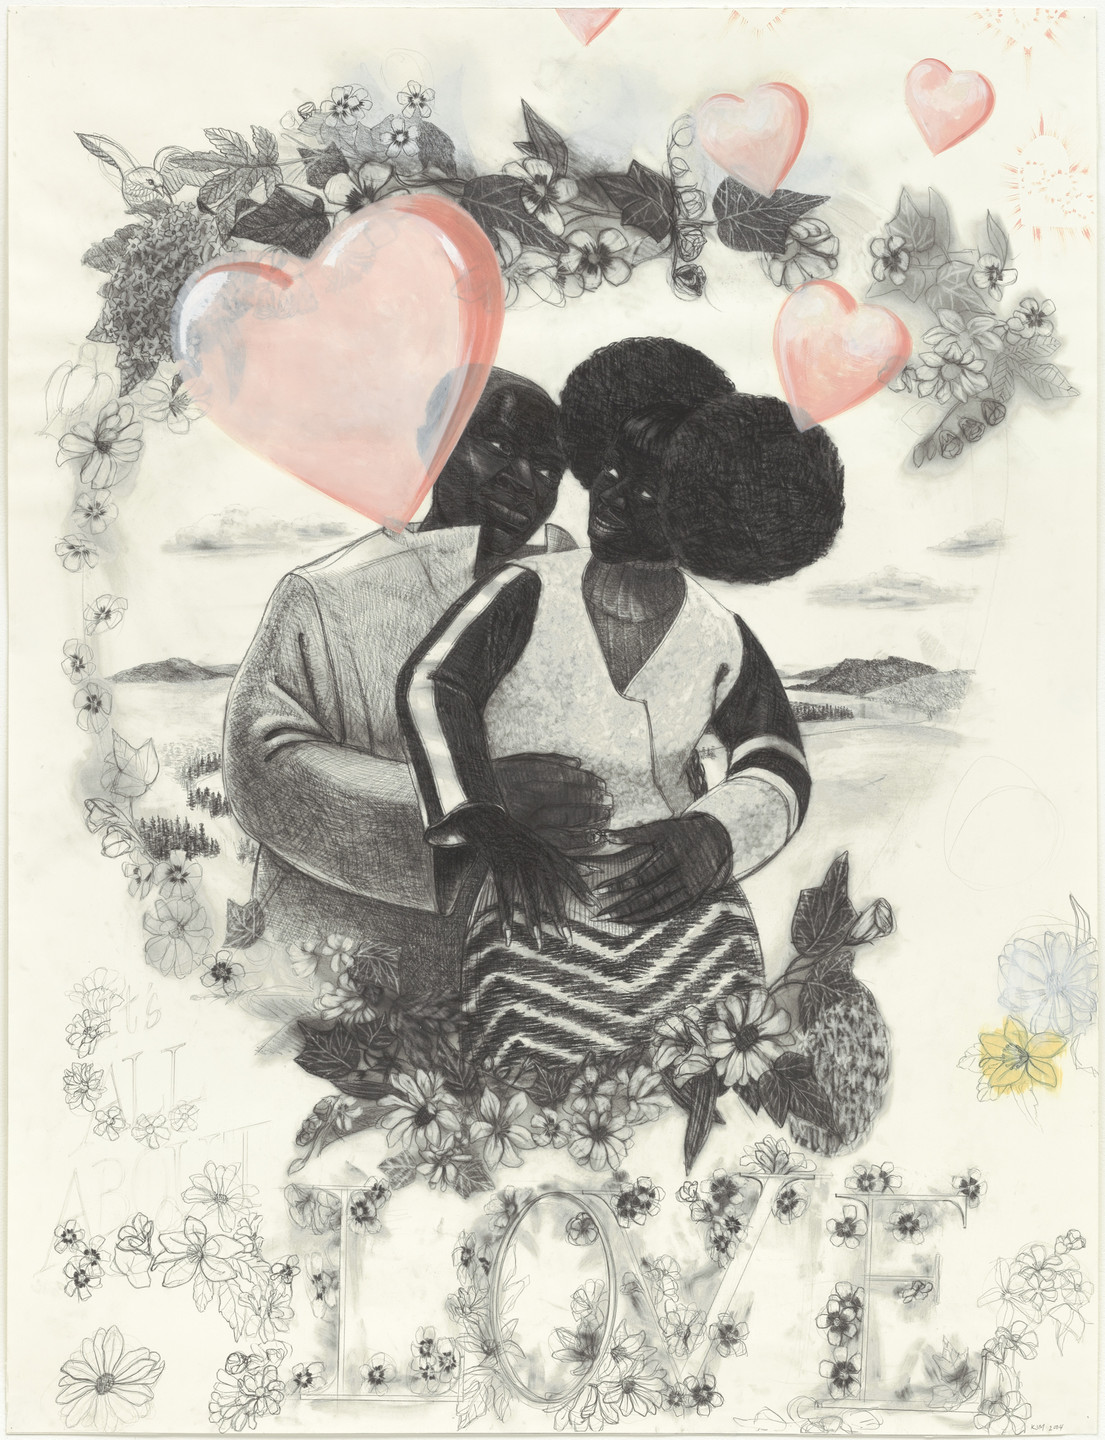 Kerry James Marshall. Study for Vignette. 2004